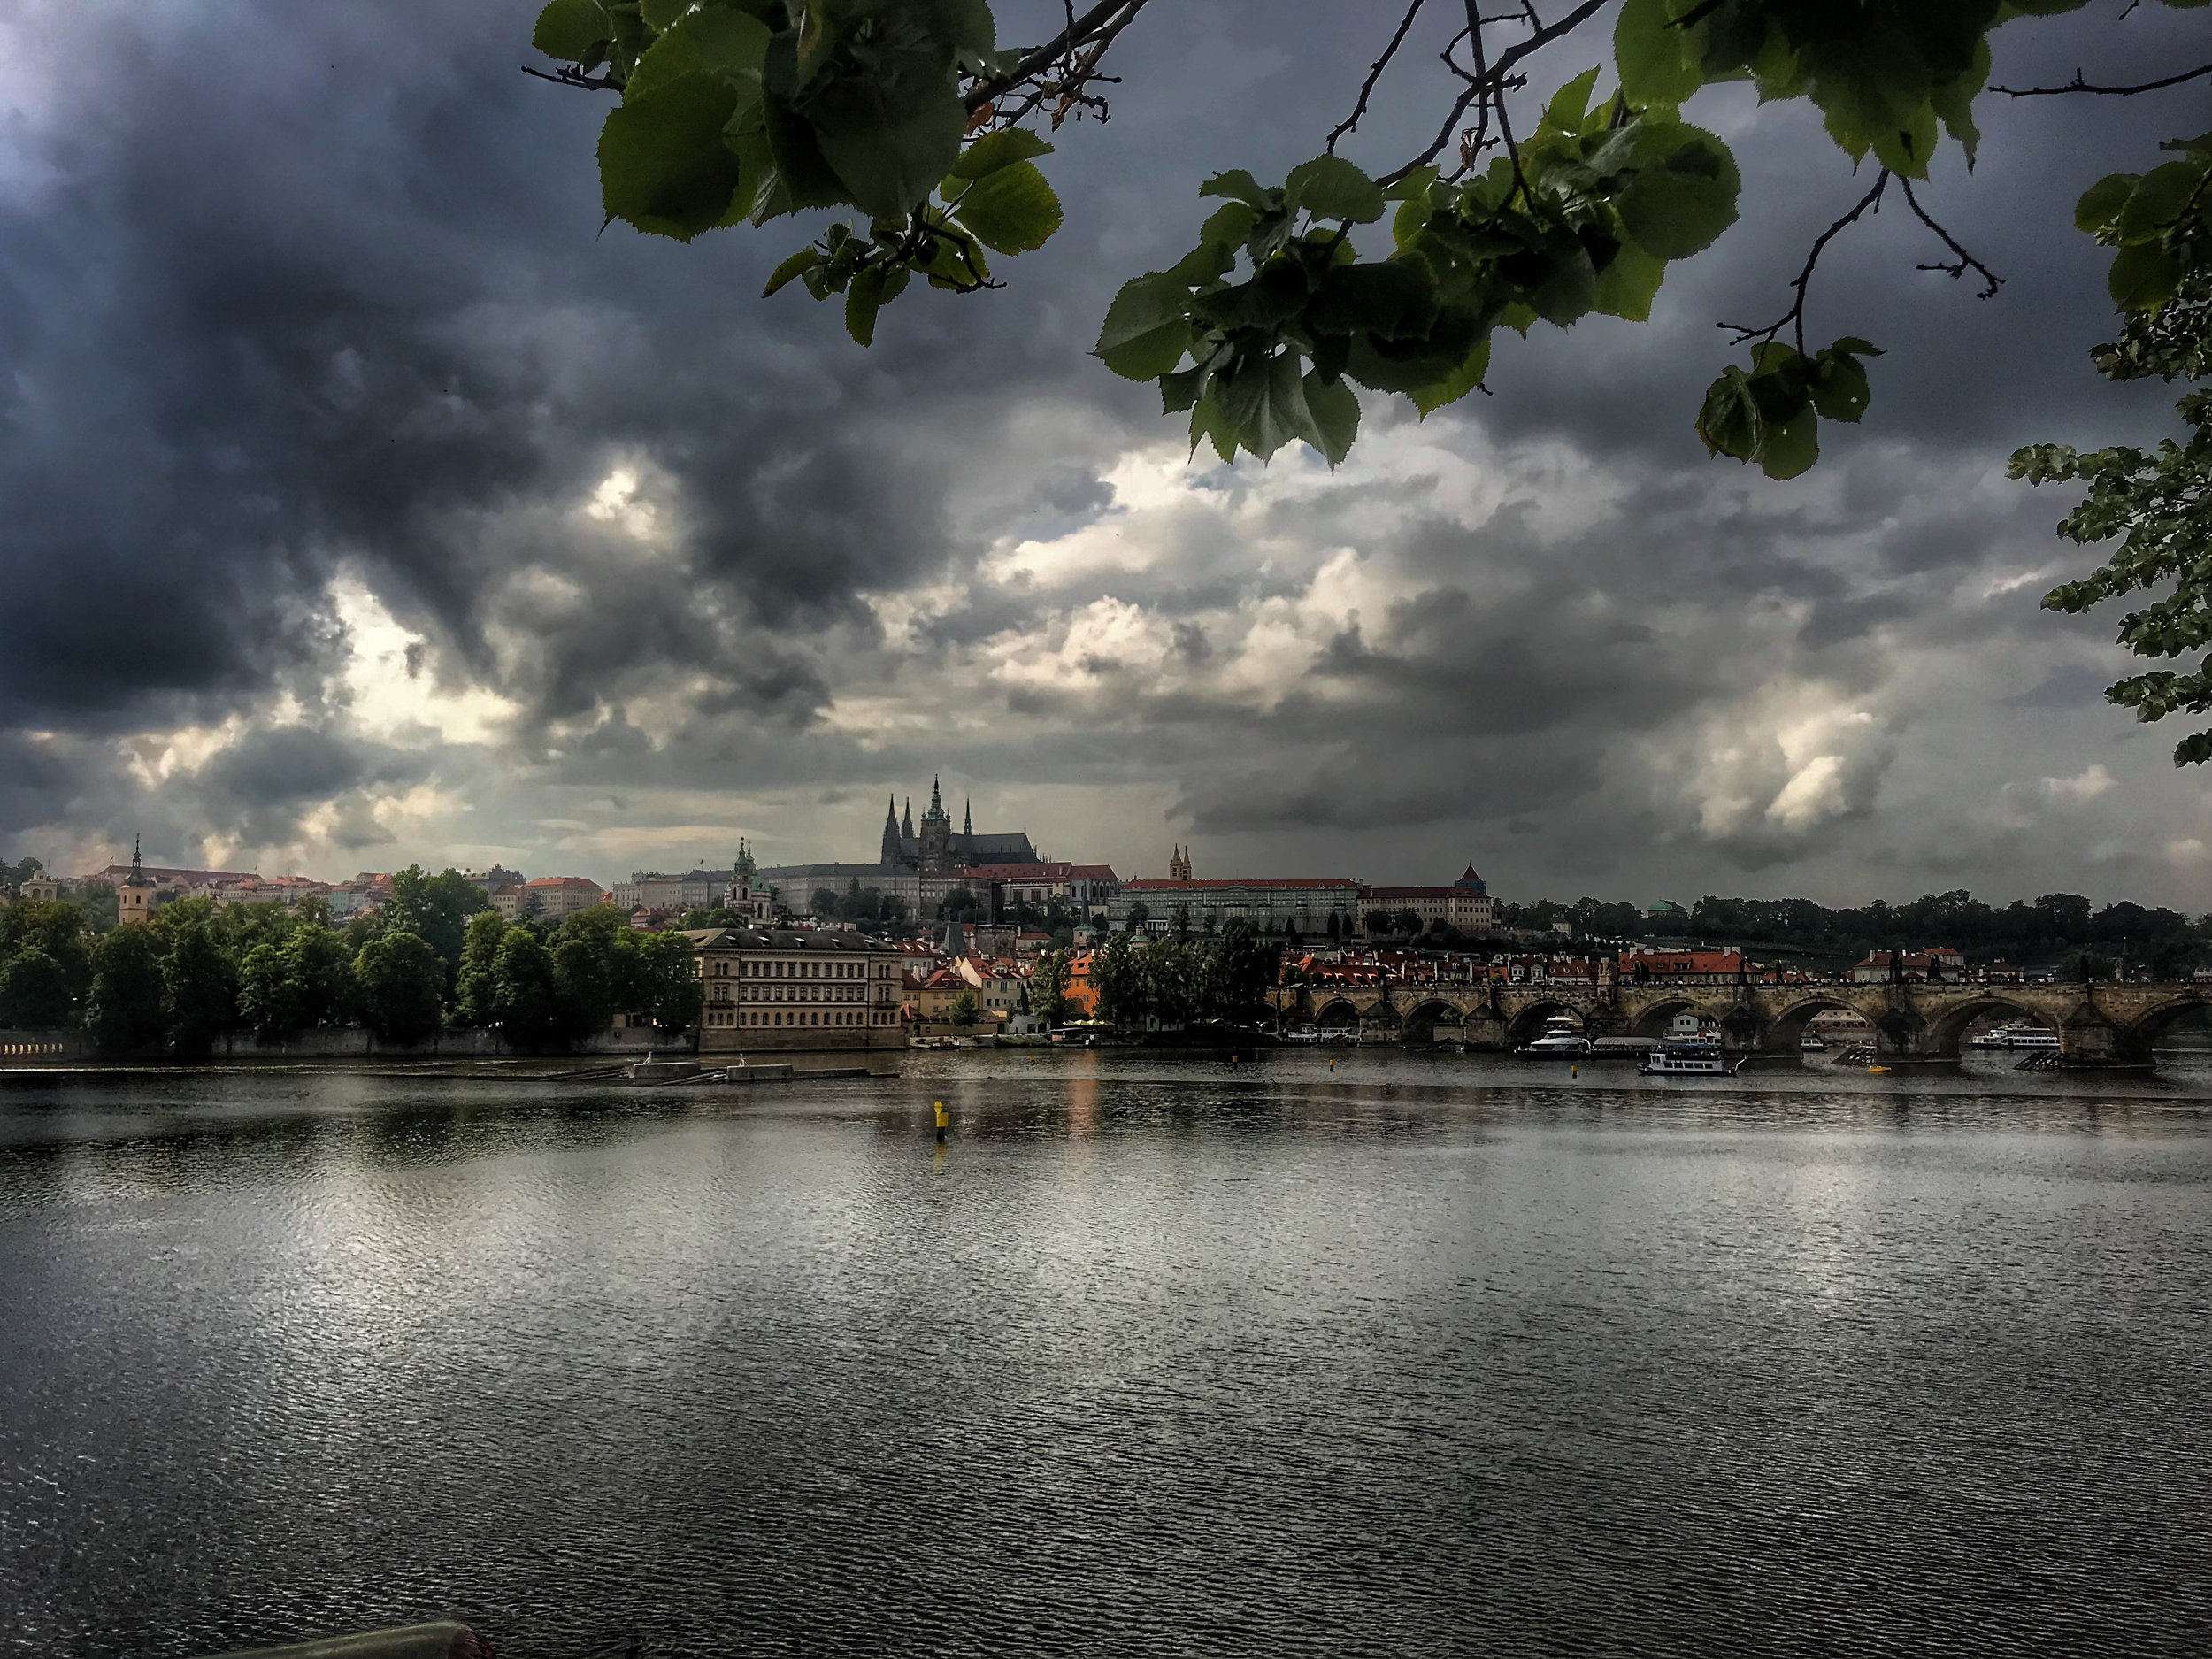 teri_Prague_WalkingOldCityRiverfront_spiritedtable_photo01.jpg